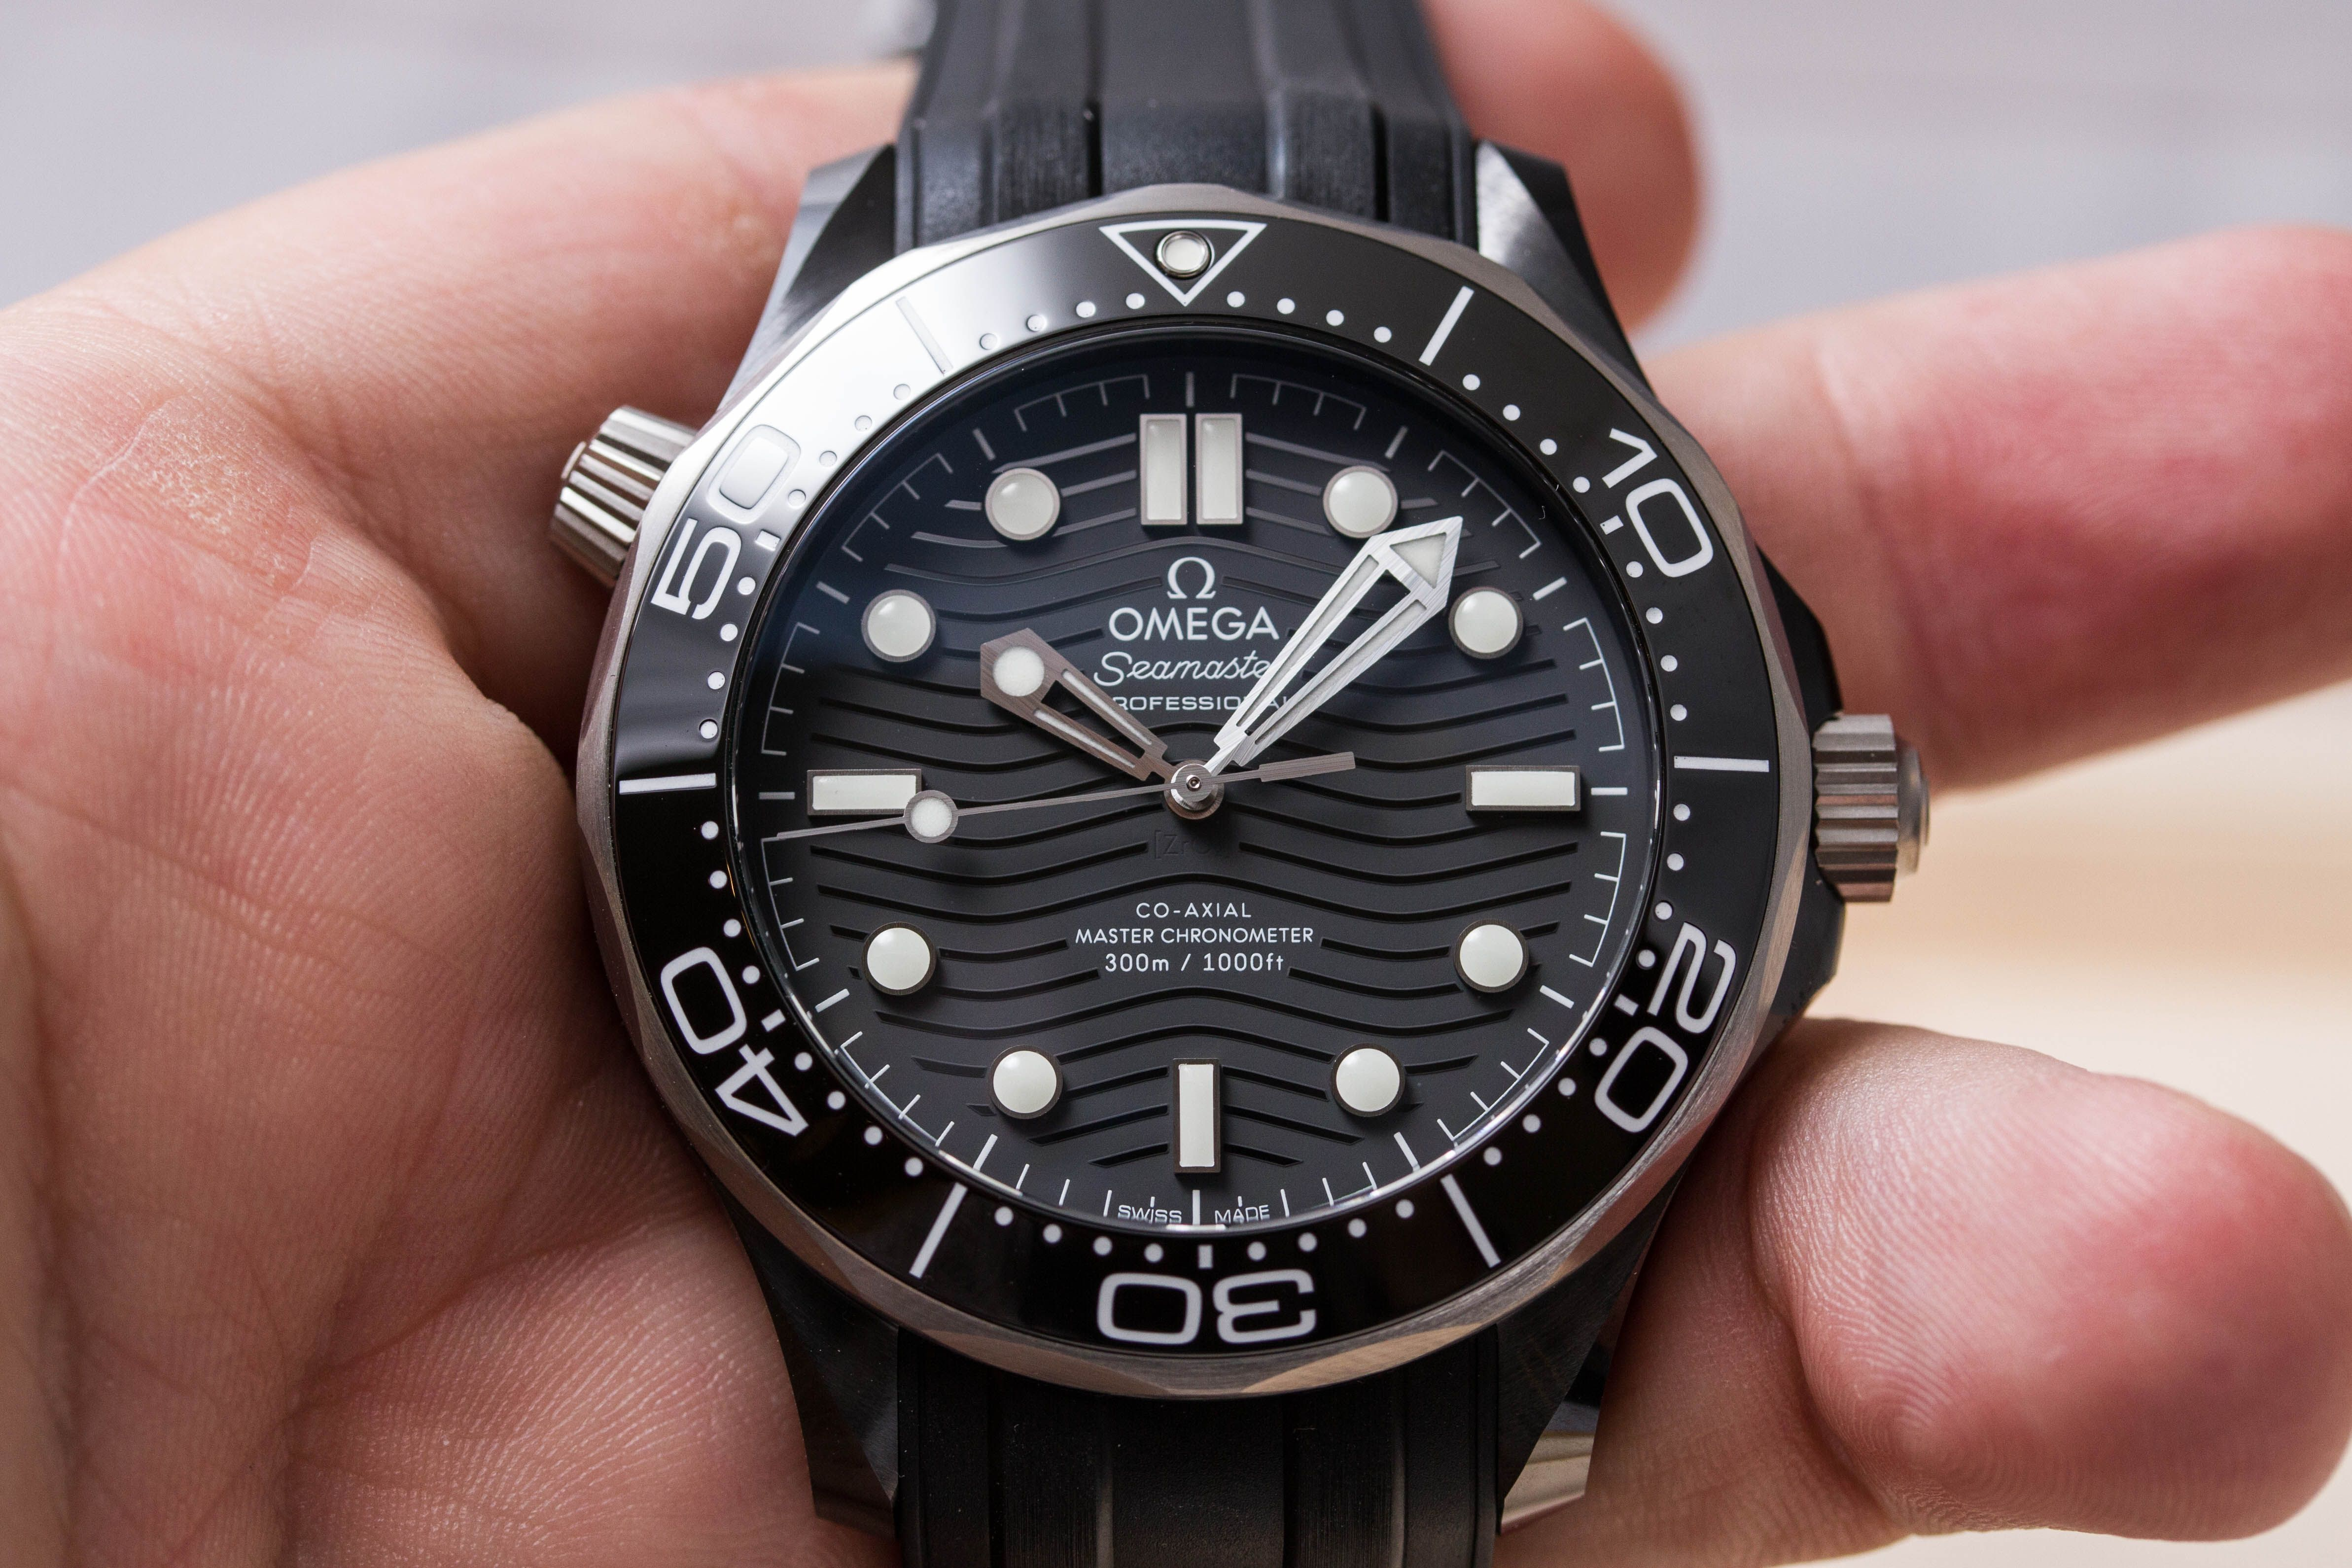 Review Omega Seamaster Diver 300m Ceramic And Titanium No Date 210 92 44 20 01 001 Specs Price Omega Seamaster Diver 300m Omega Seamaster Omega Seamaster Chronograph